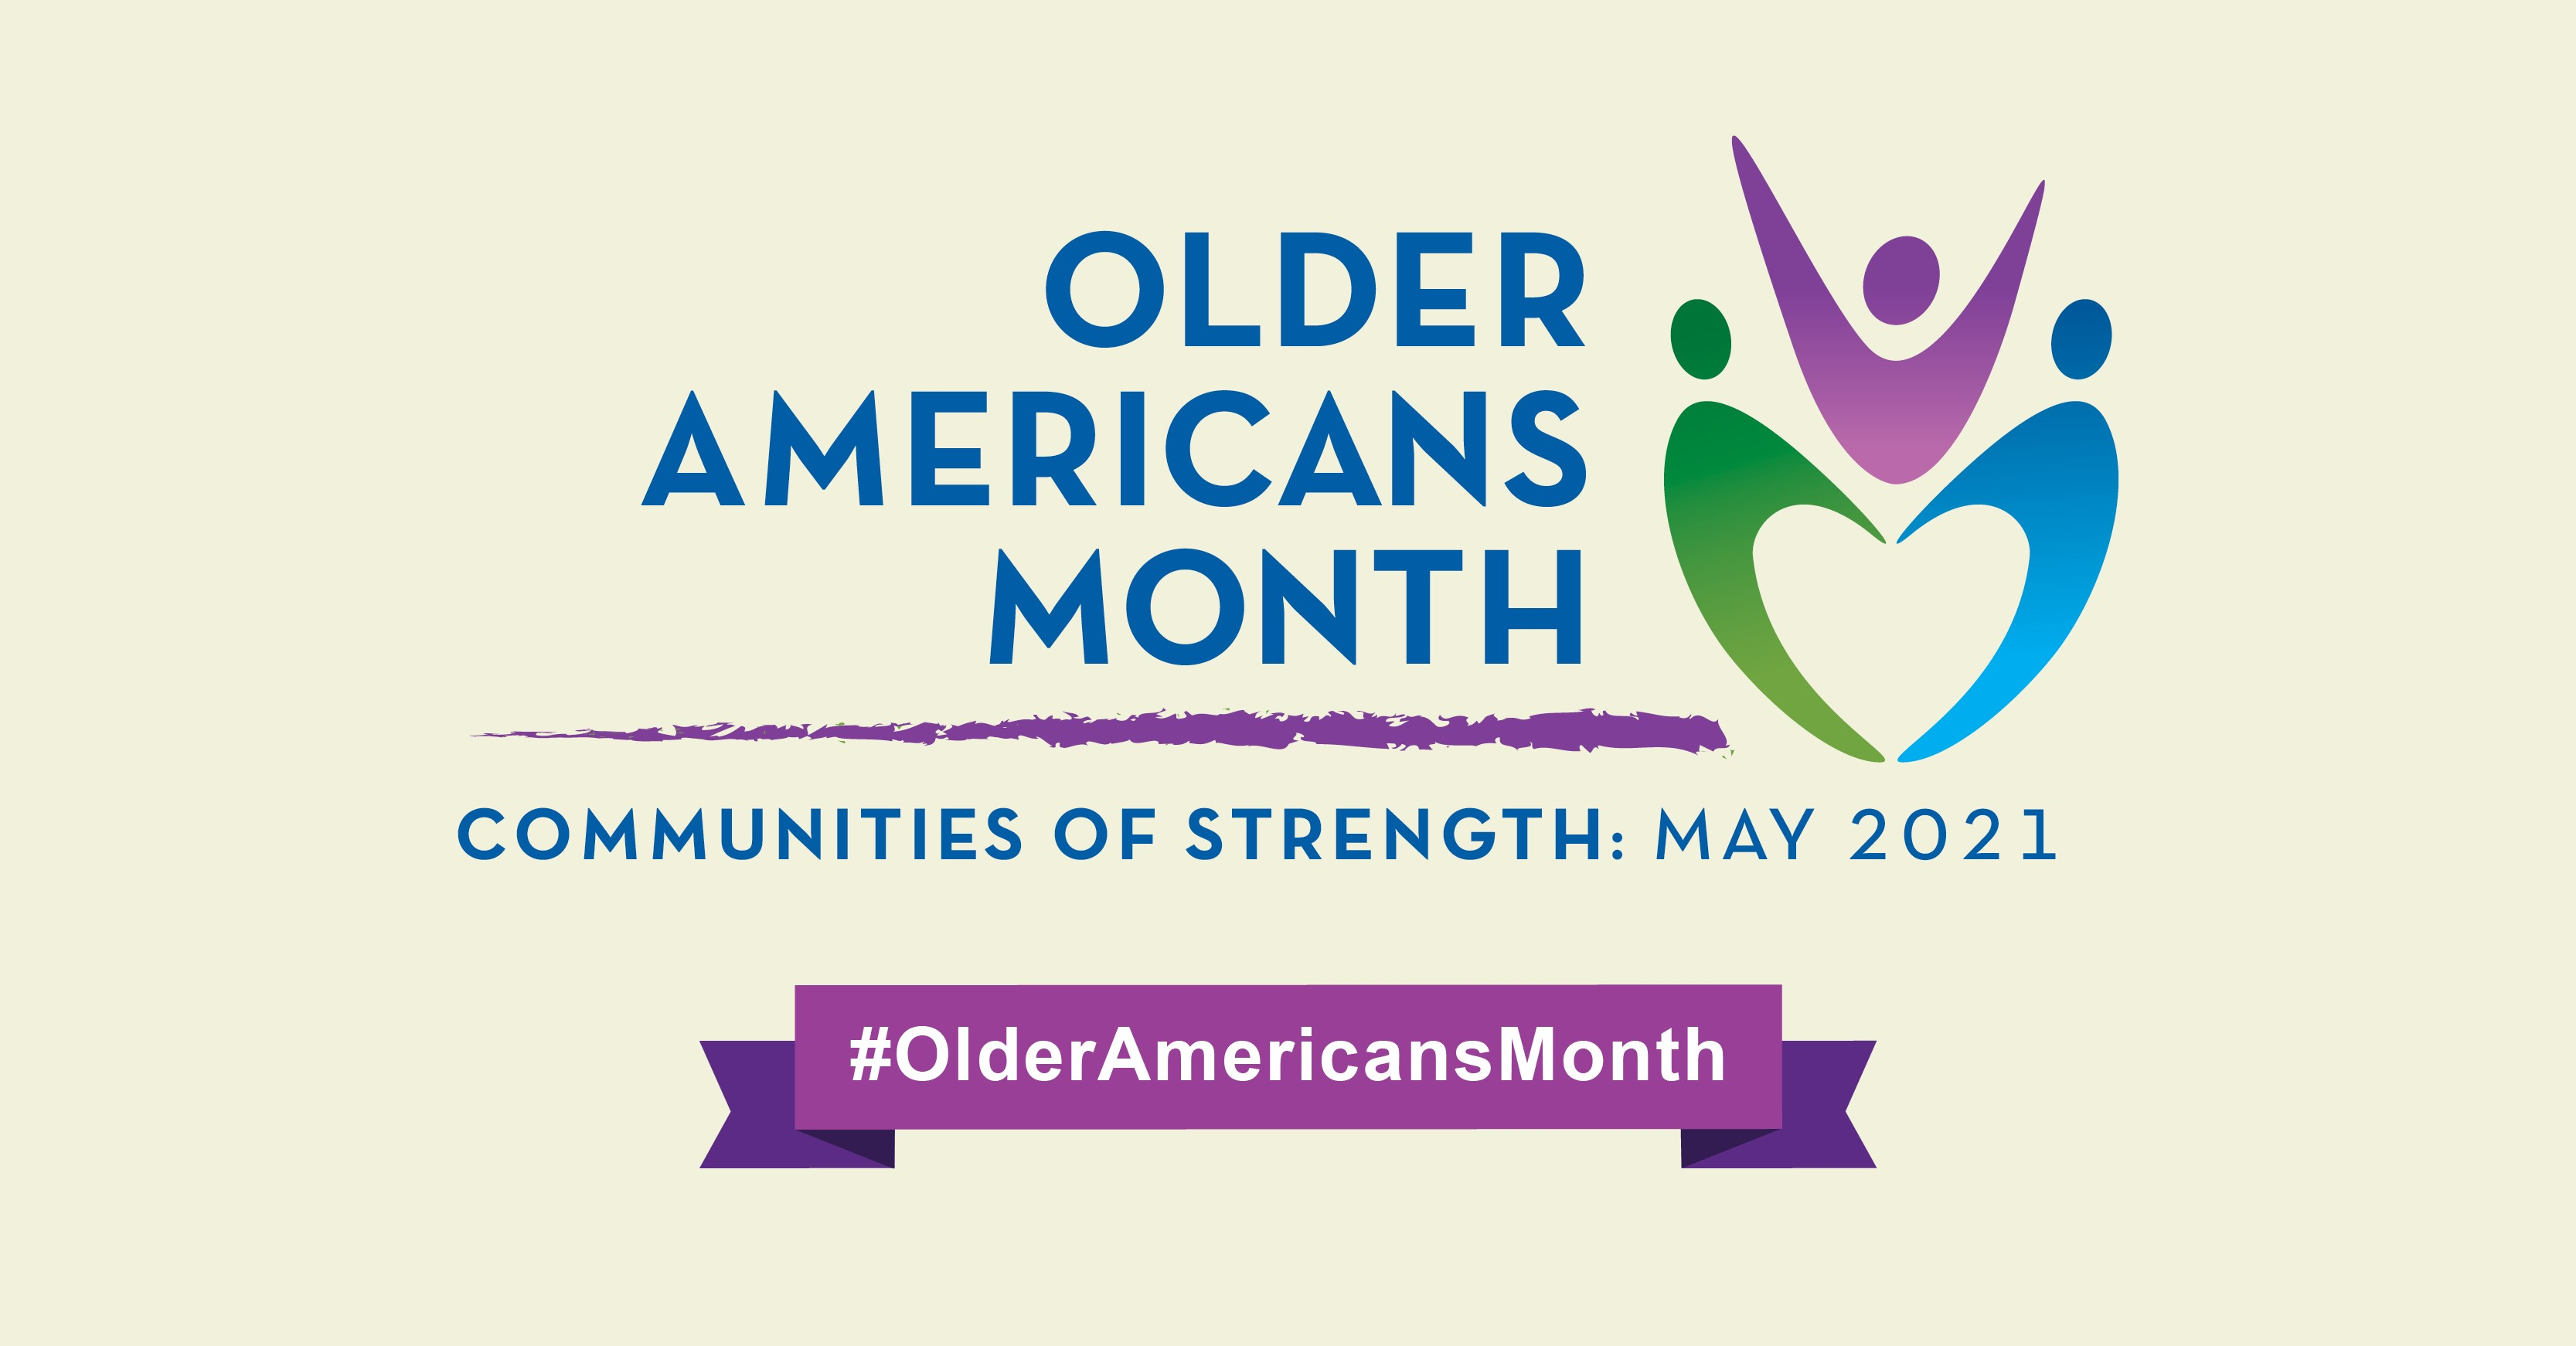 Social Media Graphic: Older Americans Month, Communities of Strength, May 2021. #OlderAmericansMonth